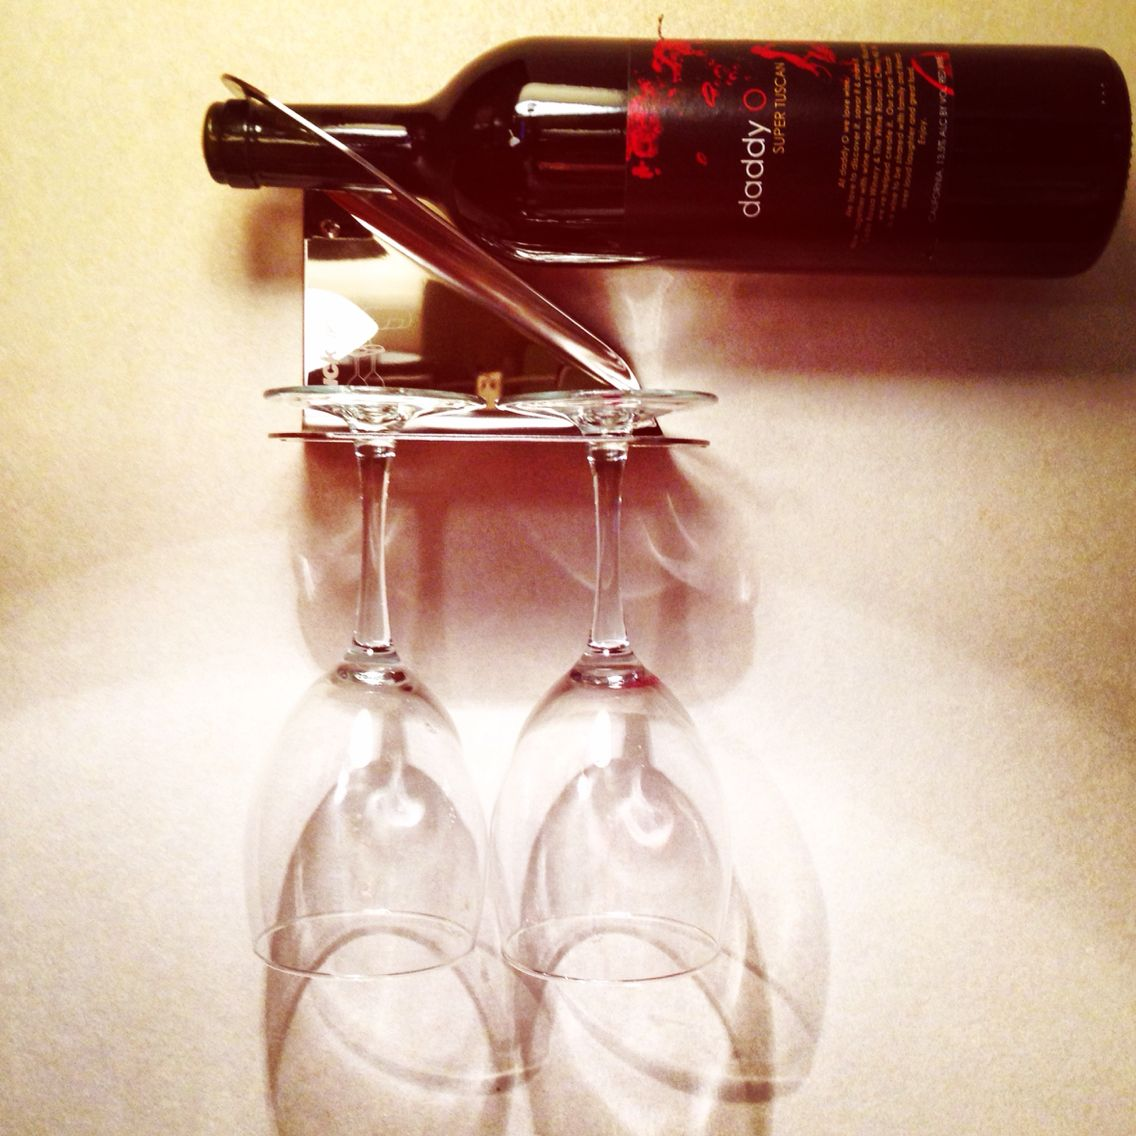 Store Your Wine Glasses Upside Down On A Rack To Avoid Dust Getting Into The Glass This Also Allows For The Glasses To Dry With S Wine Night Wine Wine Storage